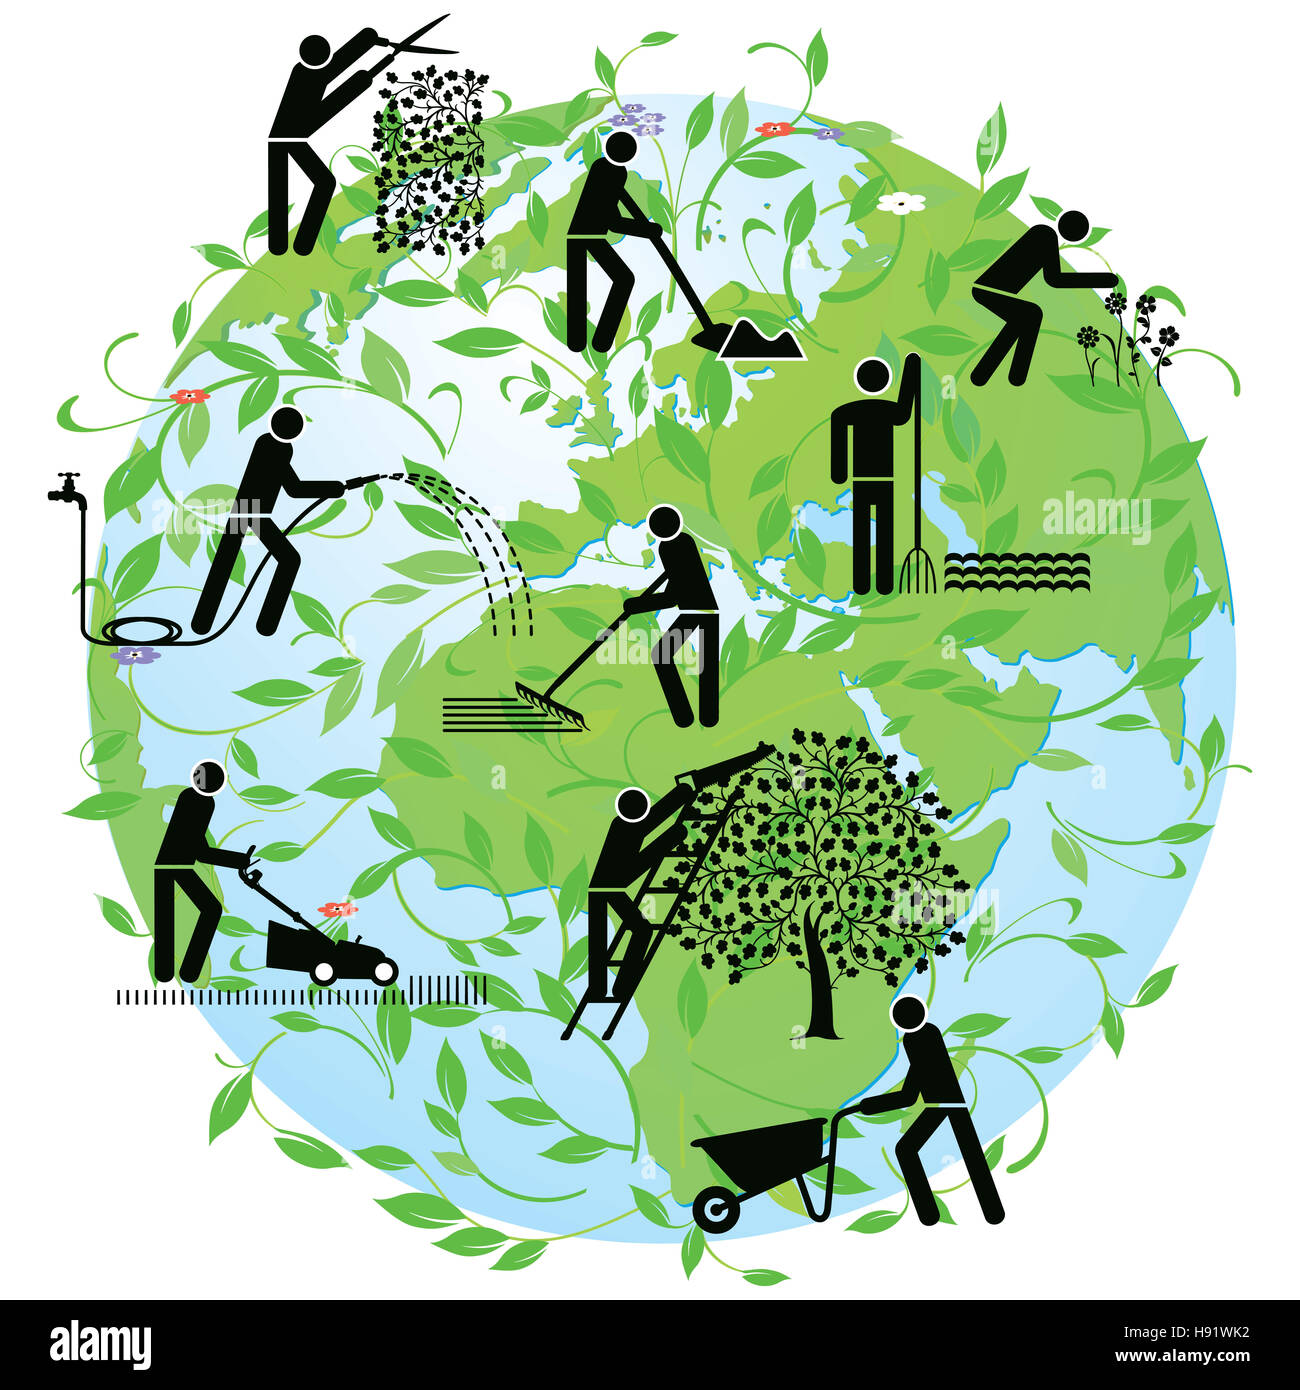 Global Agriculture - Stock Image